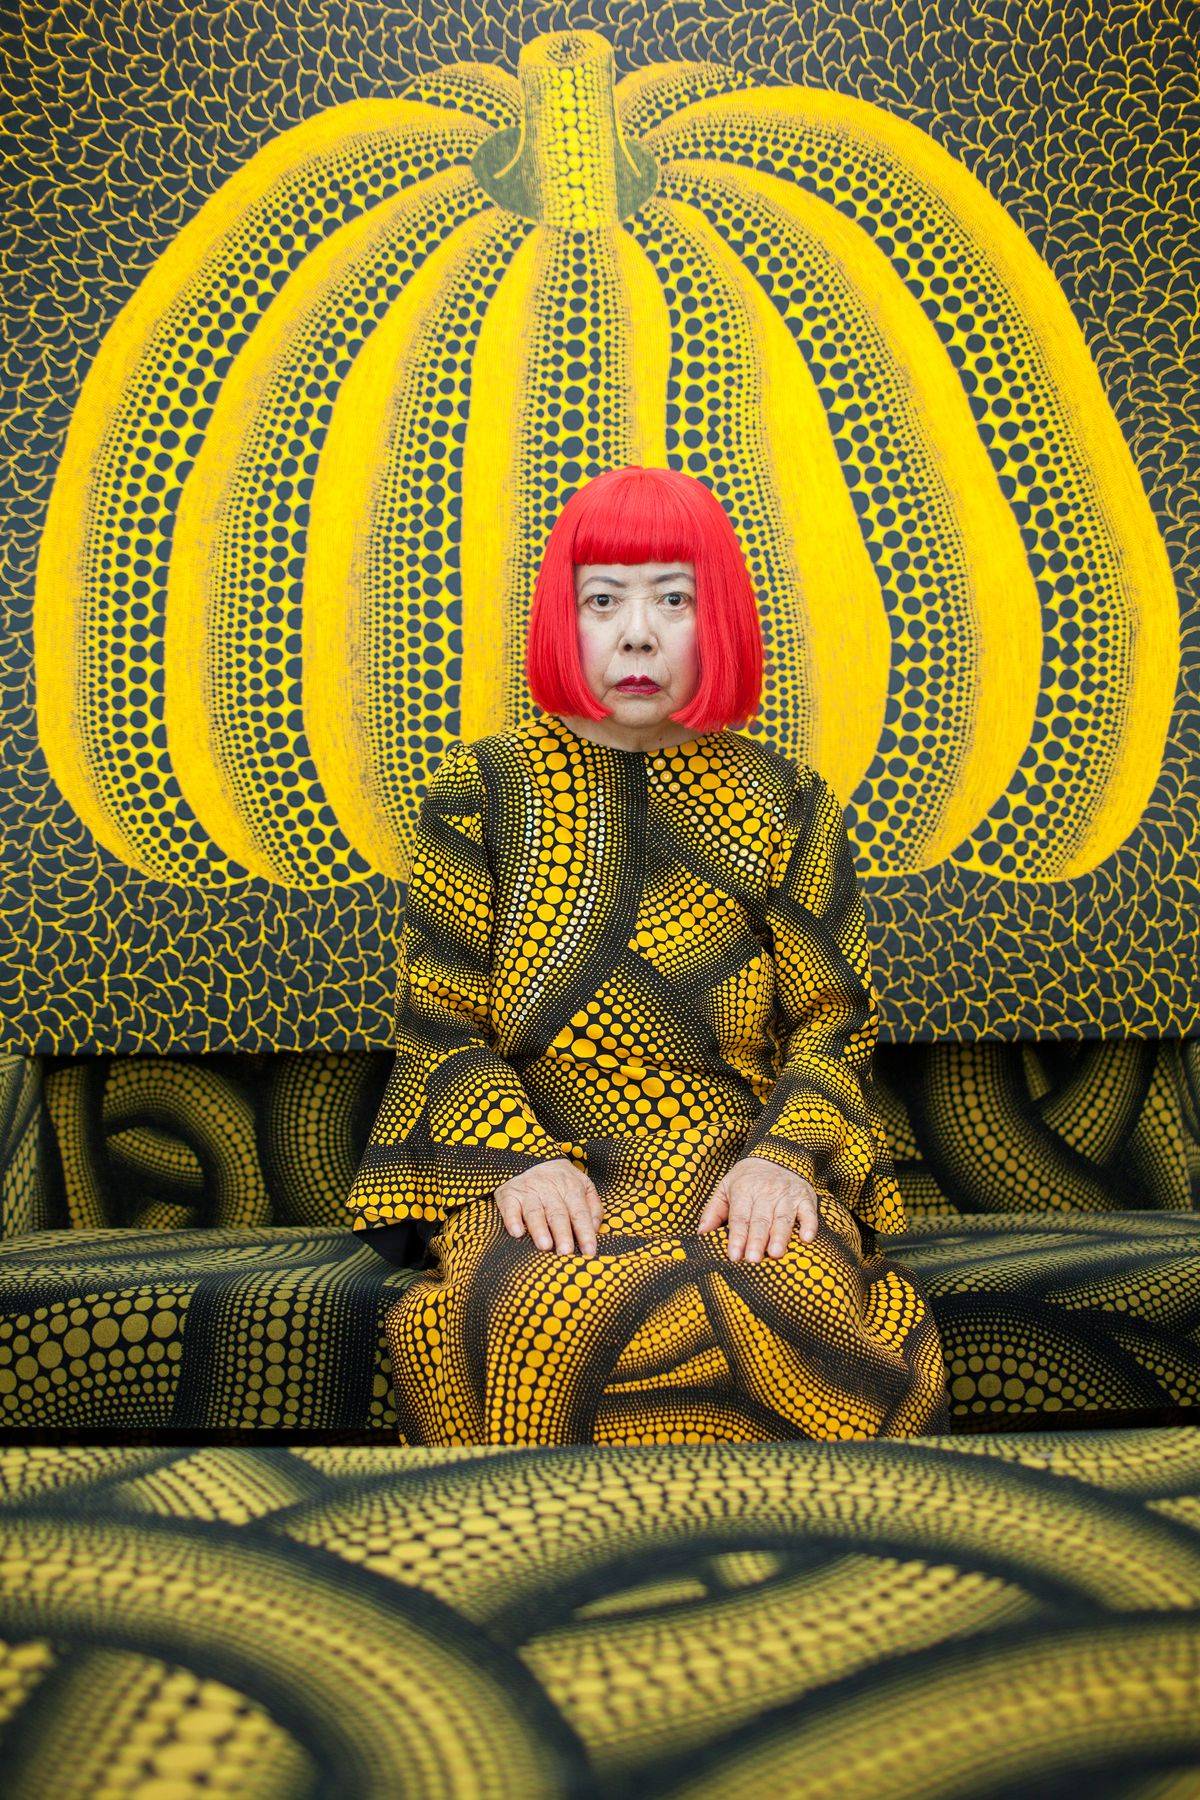 Portrait of Yayoi Kusama in costume in front of pumpkin